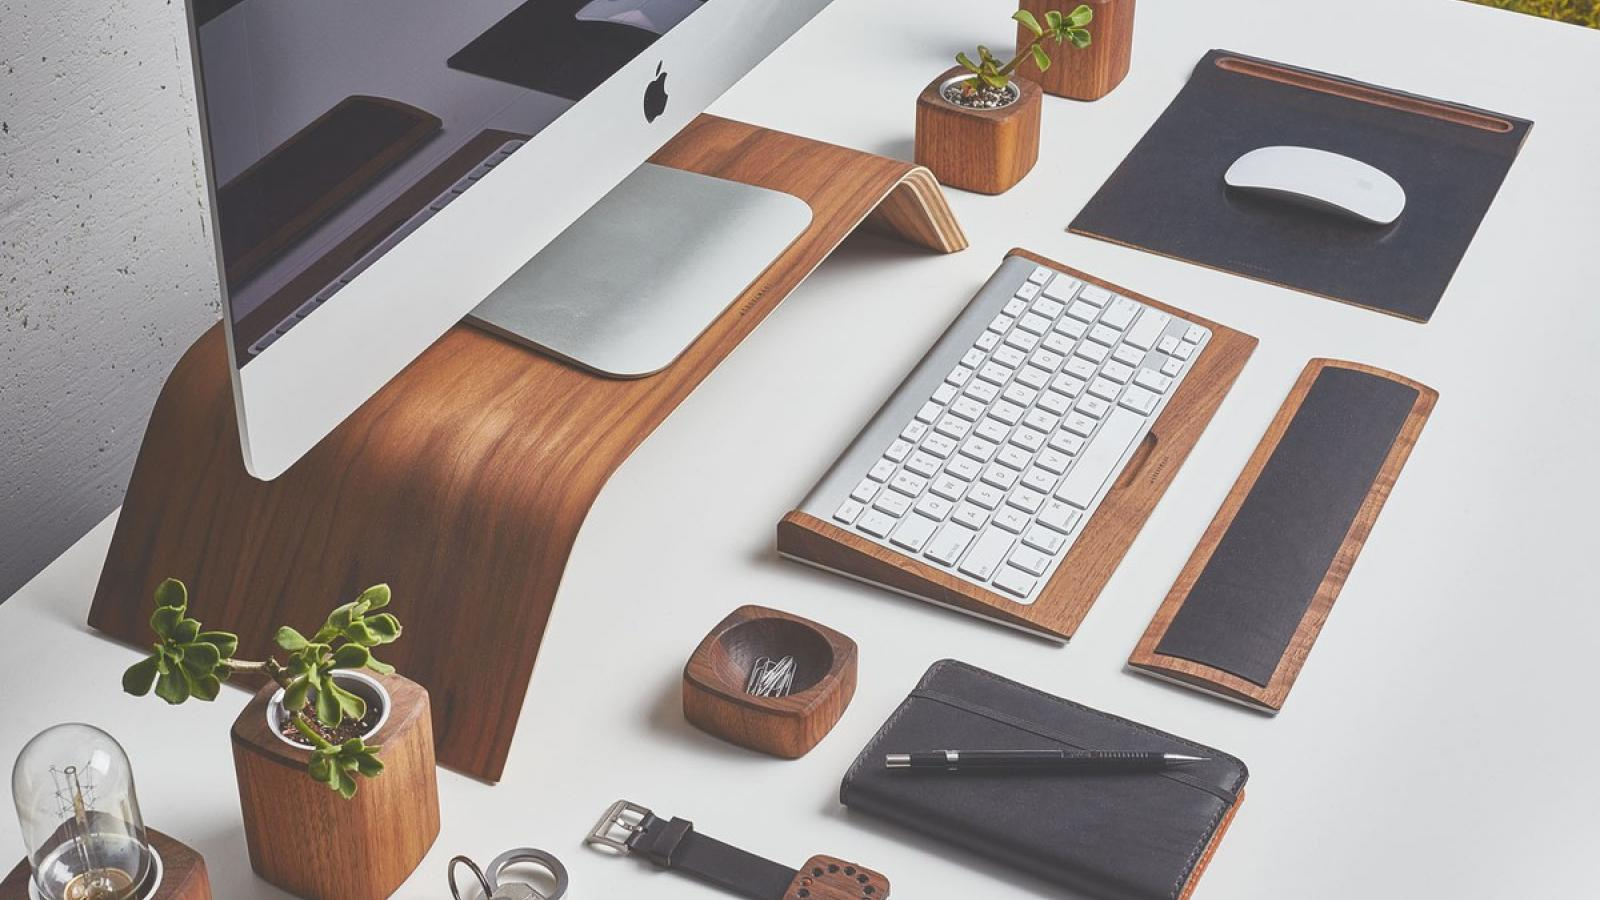 Beautiful Products by Grovemade